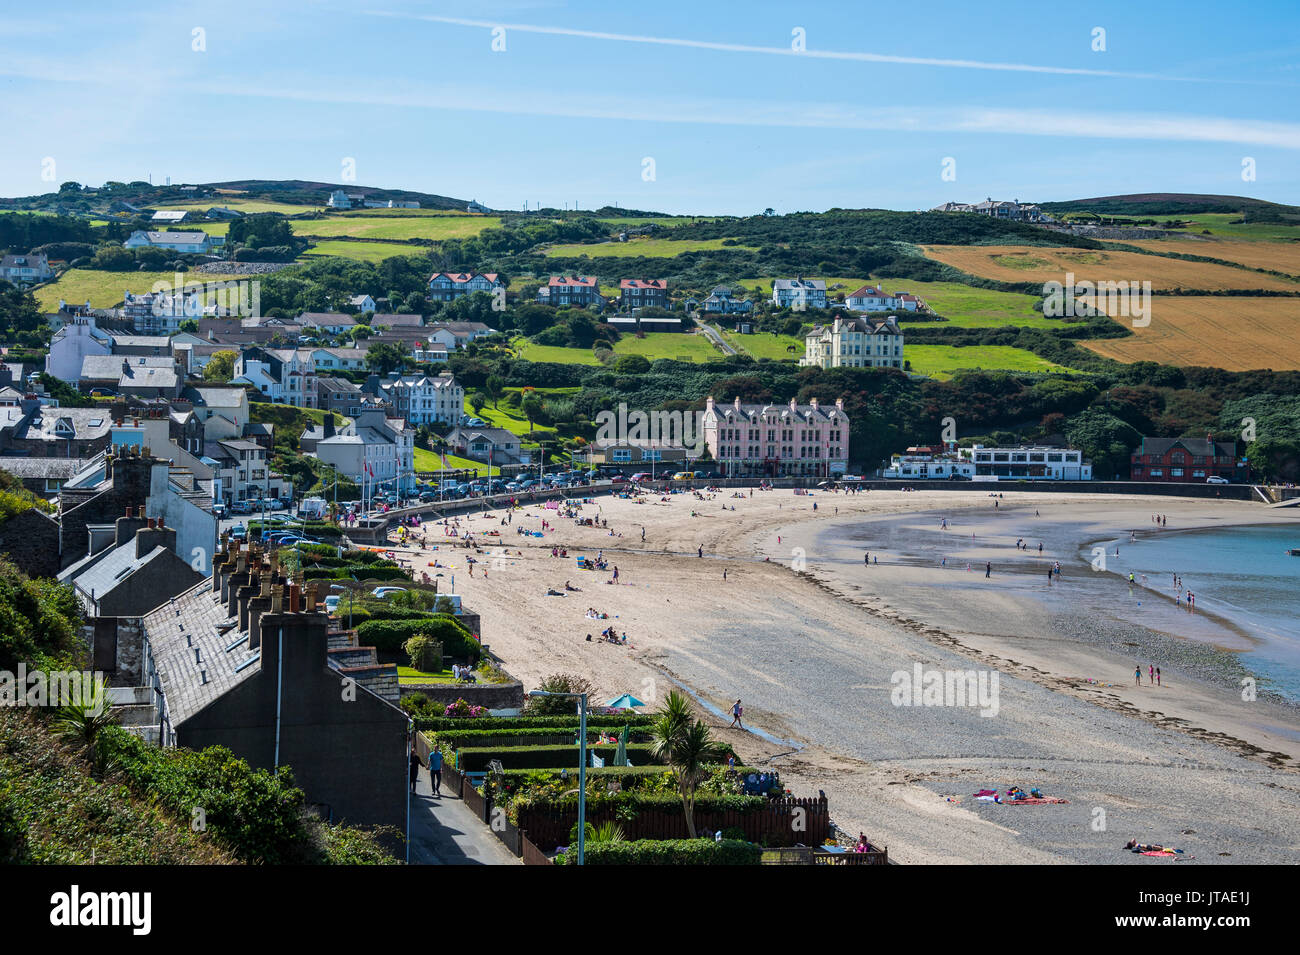 Beach of Port Erin, Isle of Man, crown dependency of the United Kingdom, Europe - Stock Image